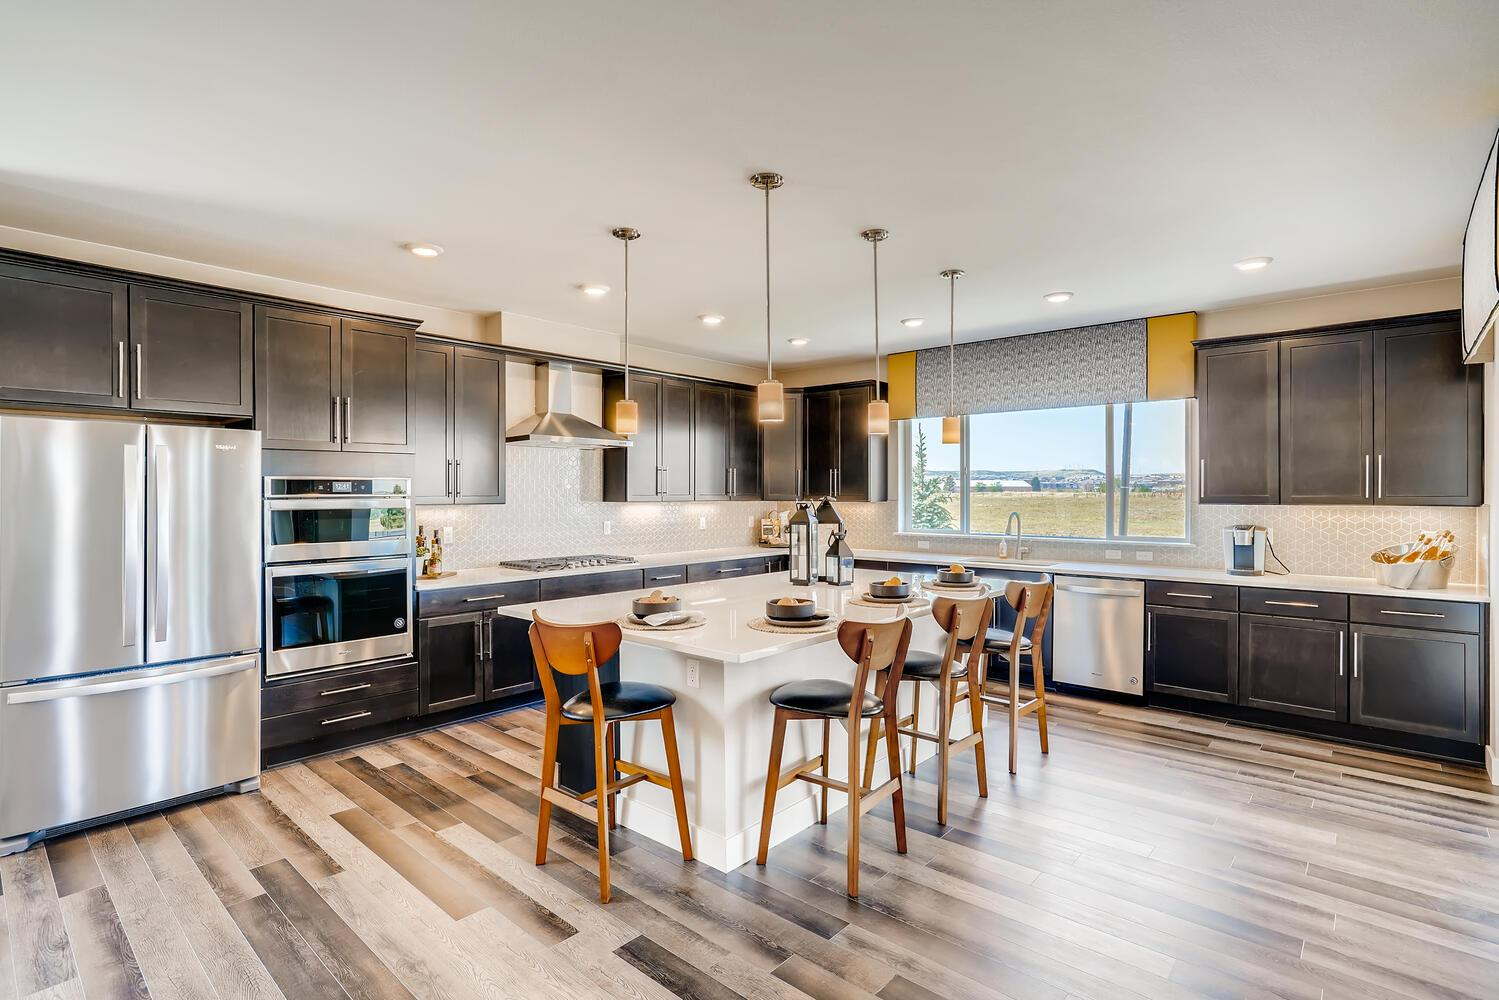 Enclave at Pine Grove,80134